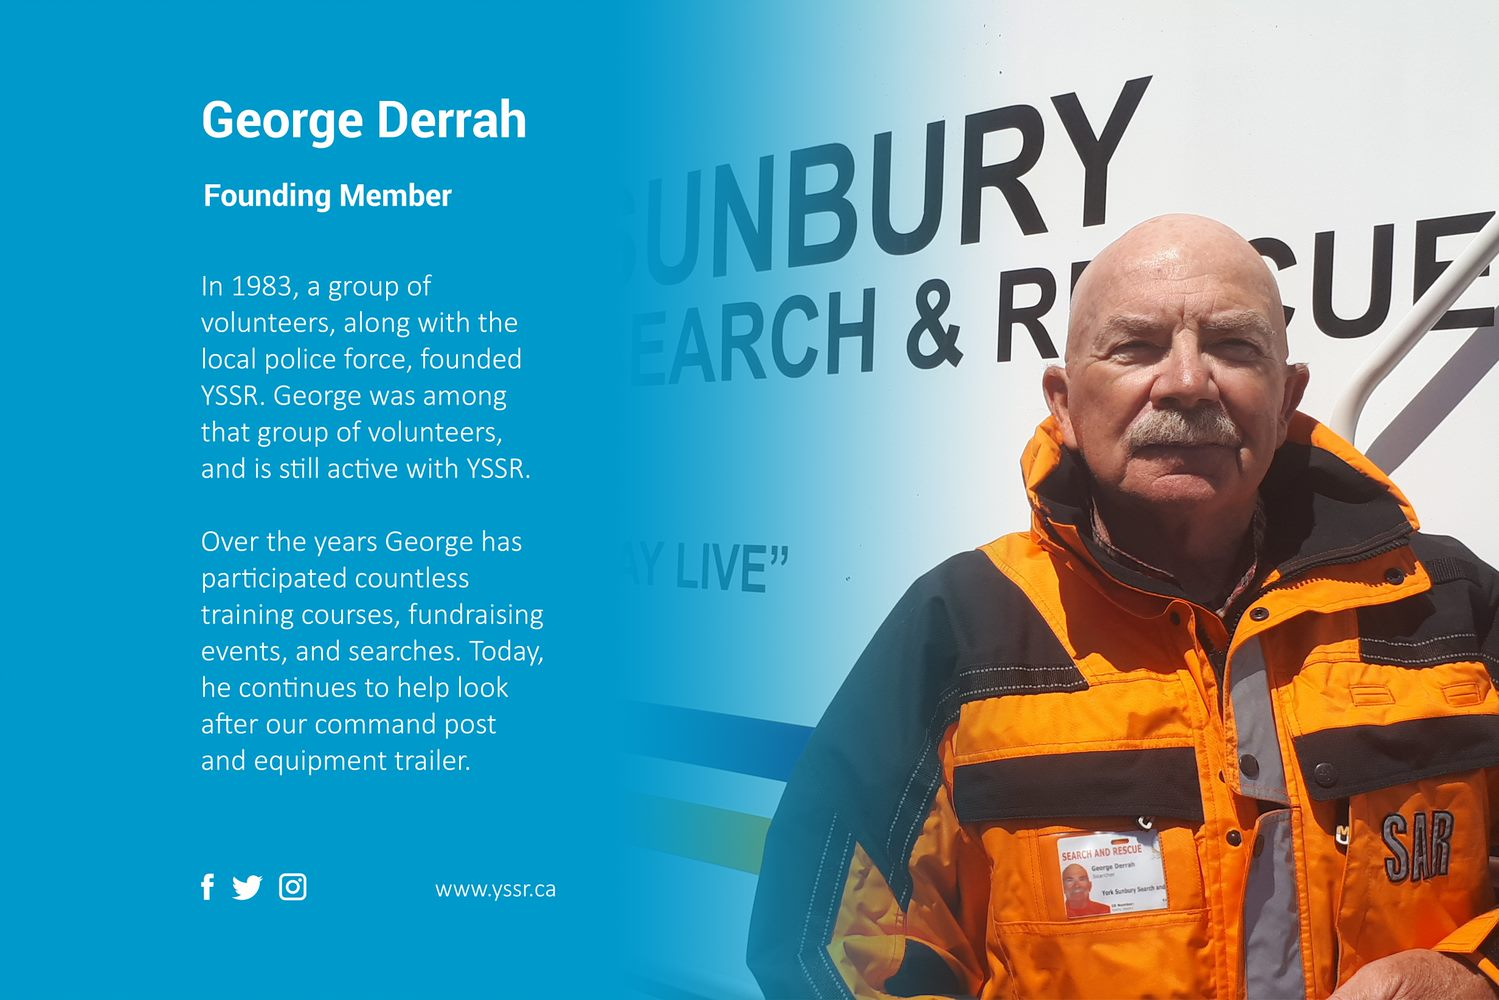 Founding member George Derrah highlight